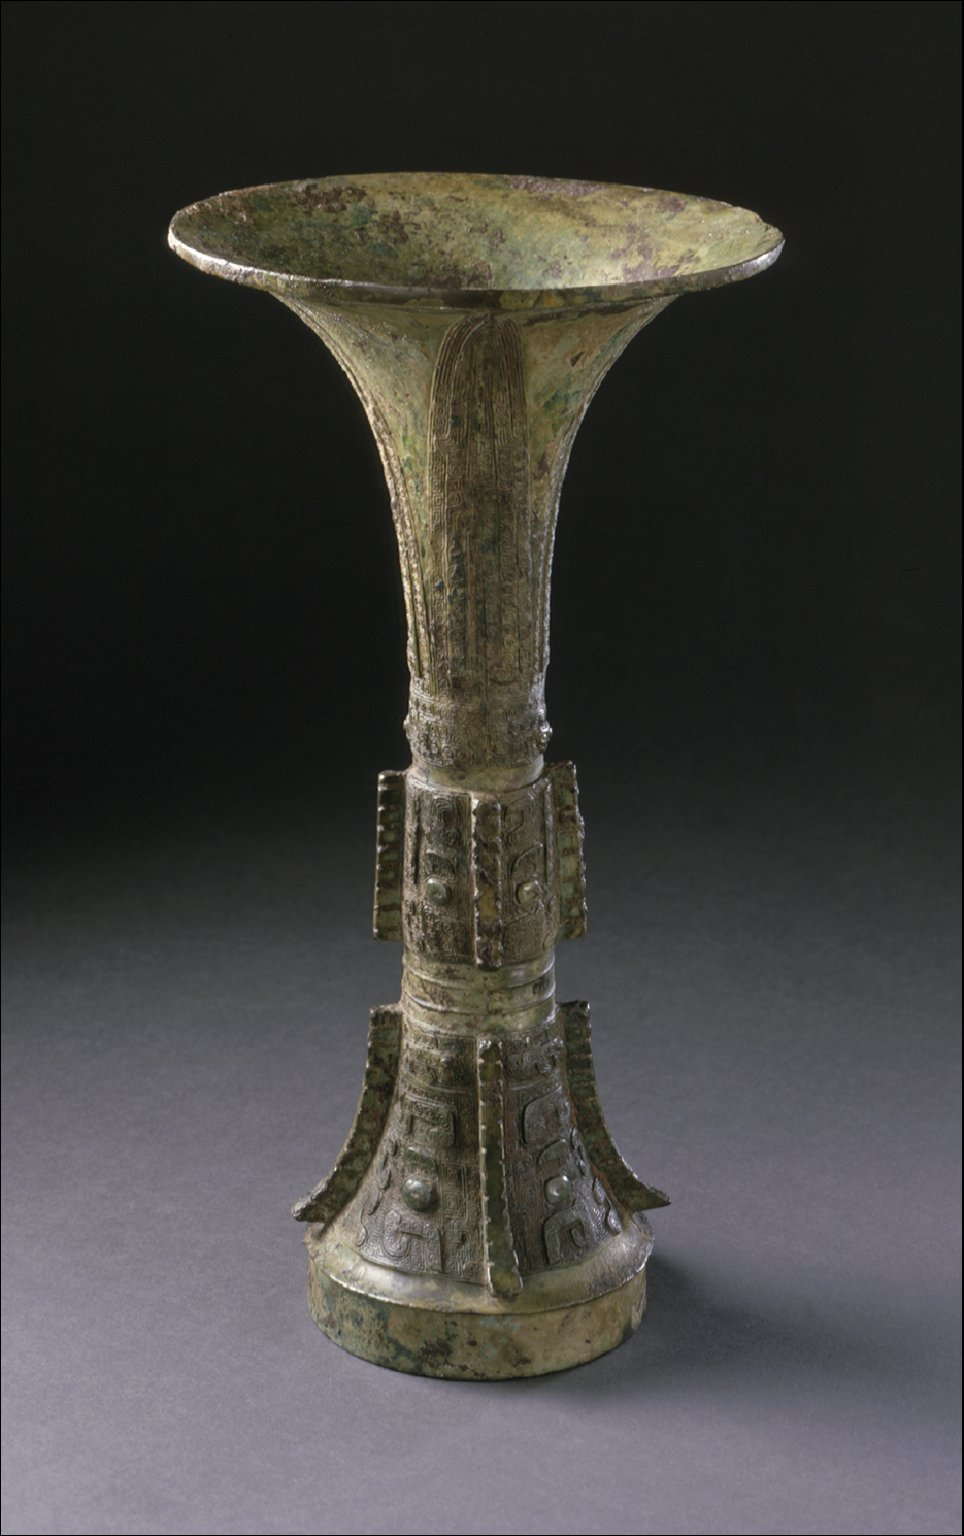 Ritual Wine Cup (Gu) with Masks, Dragons, and Snakes